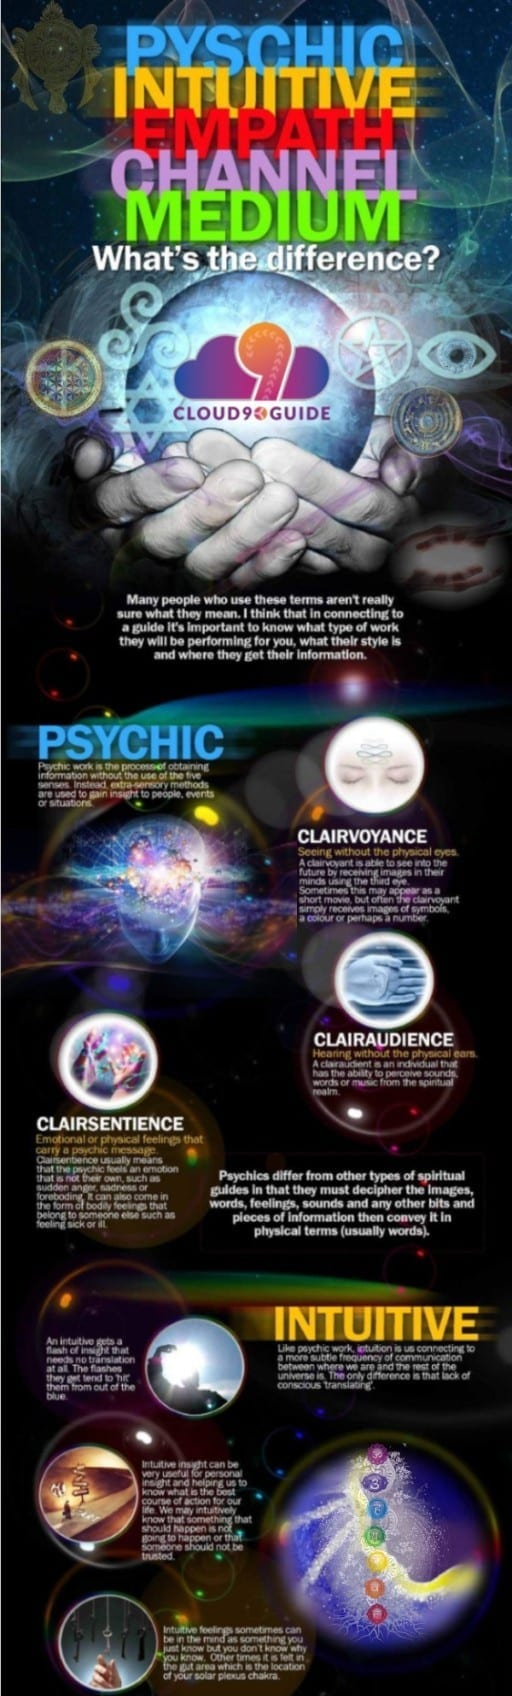 About Psychics, Intuitives, Empaths, Channels, and Mediums; What's the Difference - Cloud 9 Guide